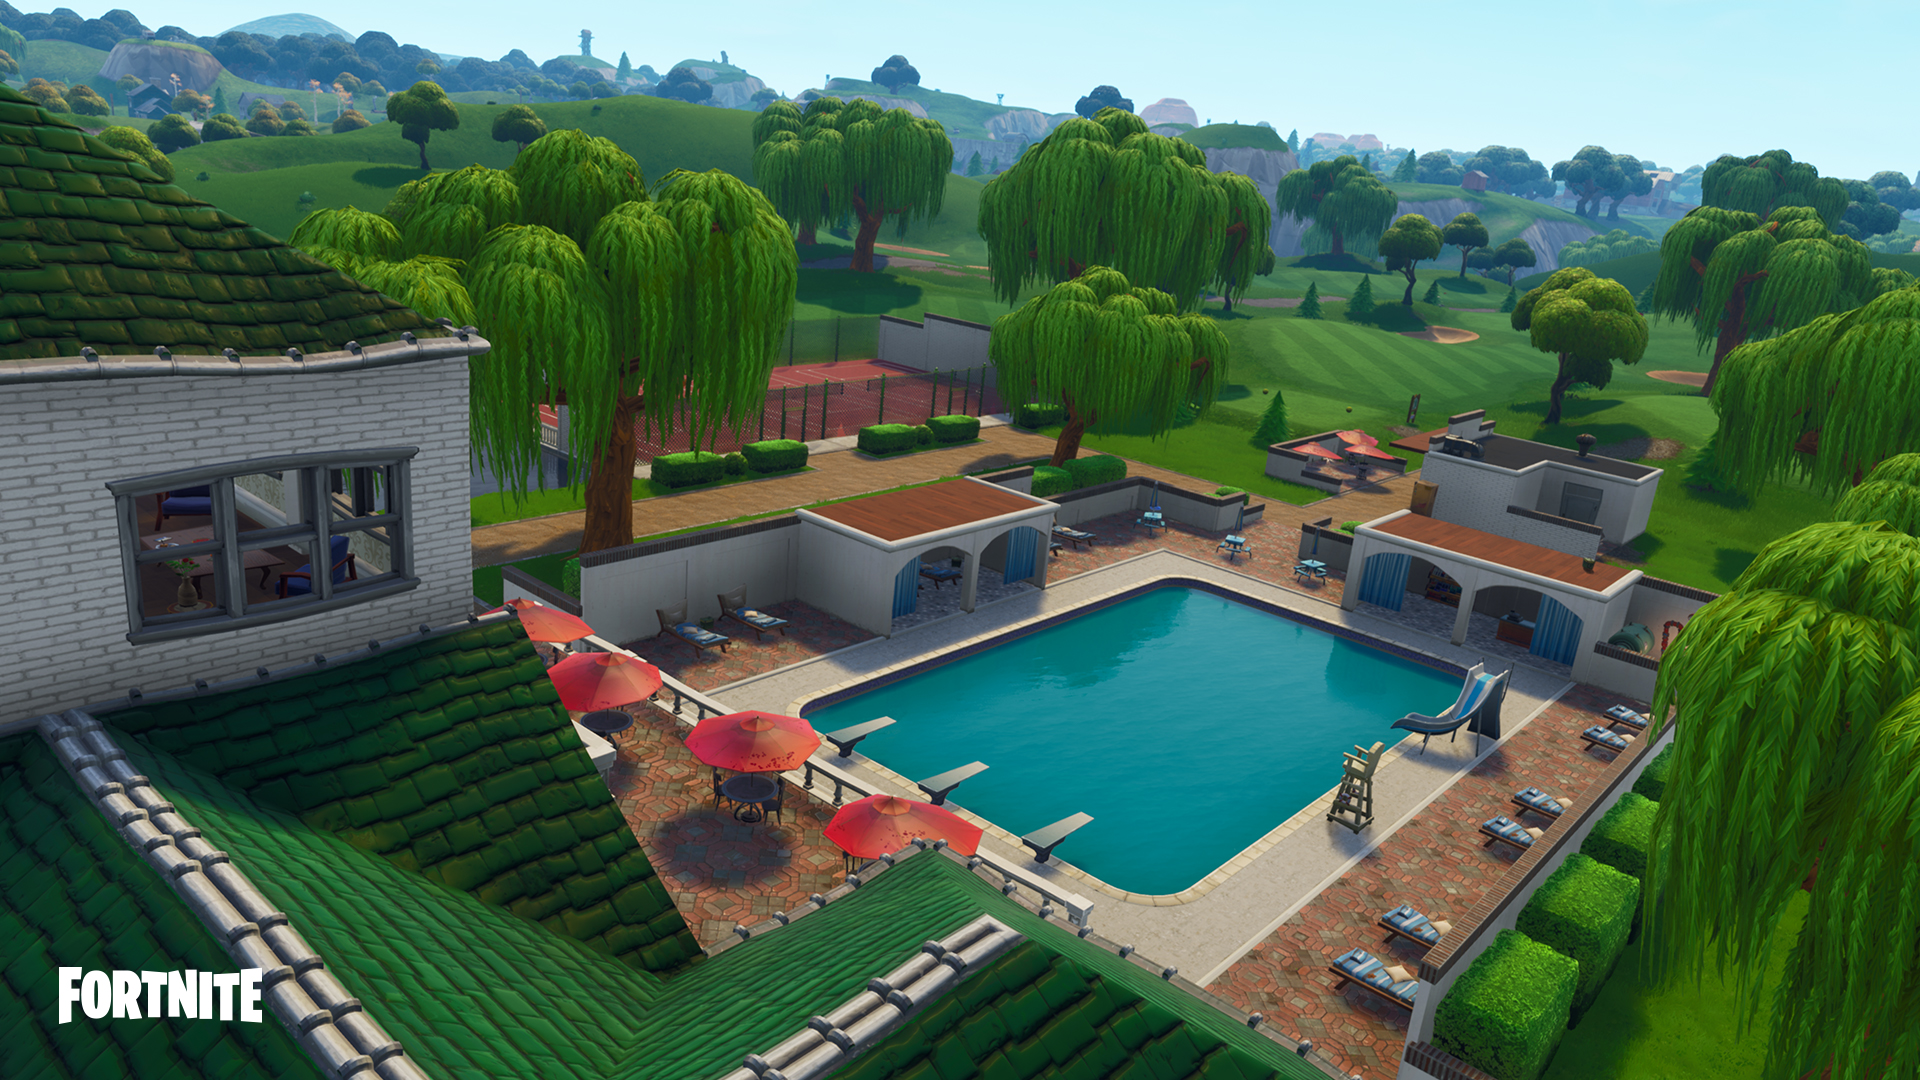 U0027Fortniteu0027 Season 5 Map: Guide To The New Locations And Changes | Inverse